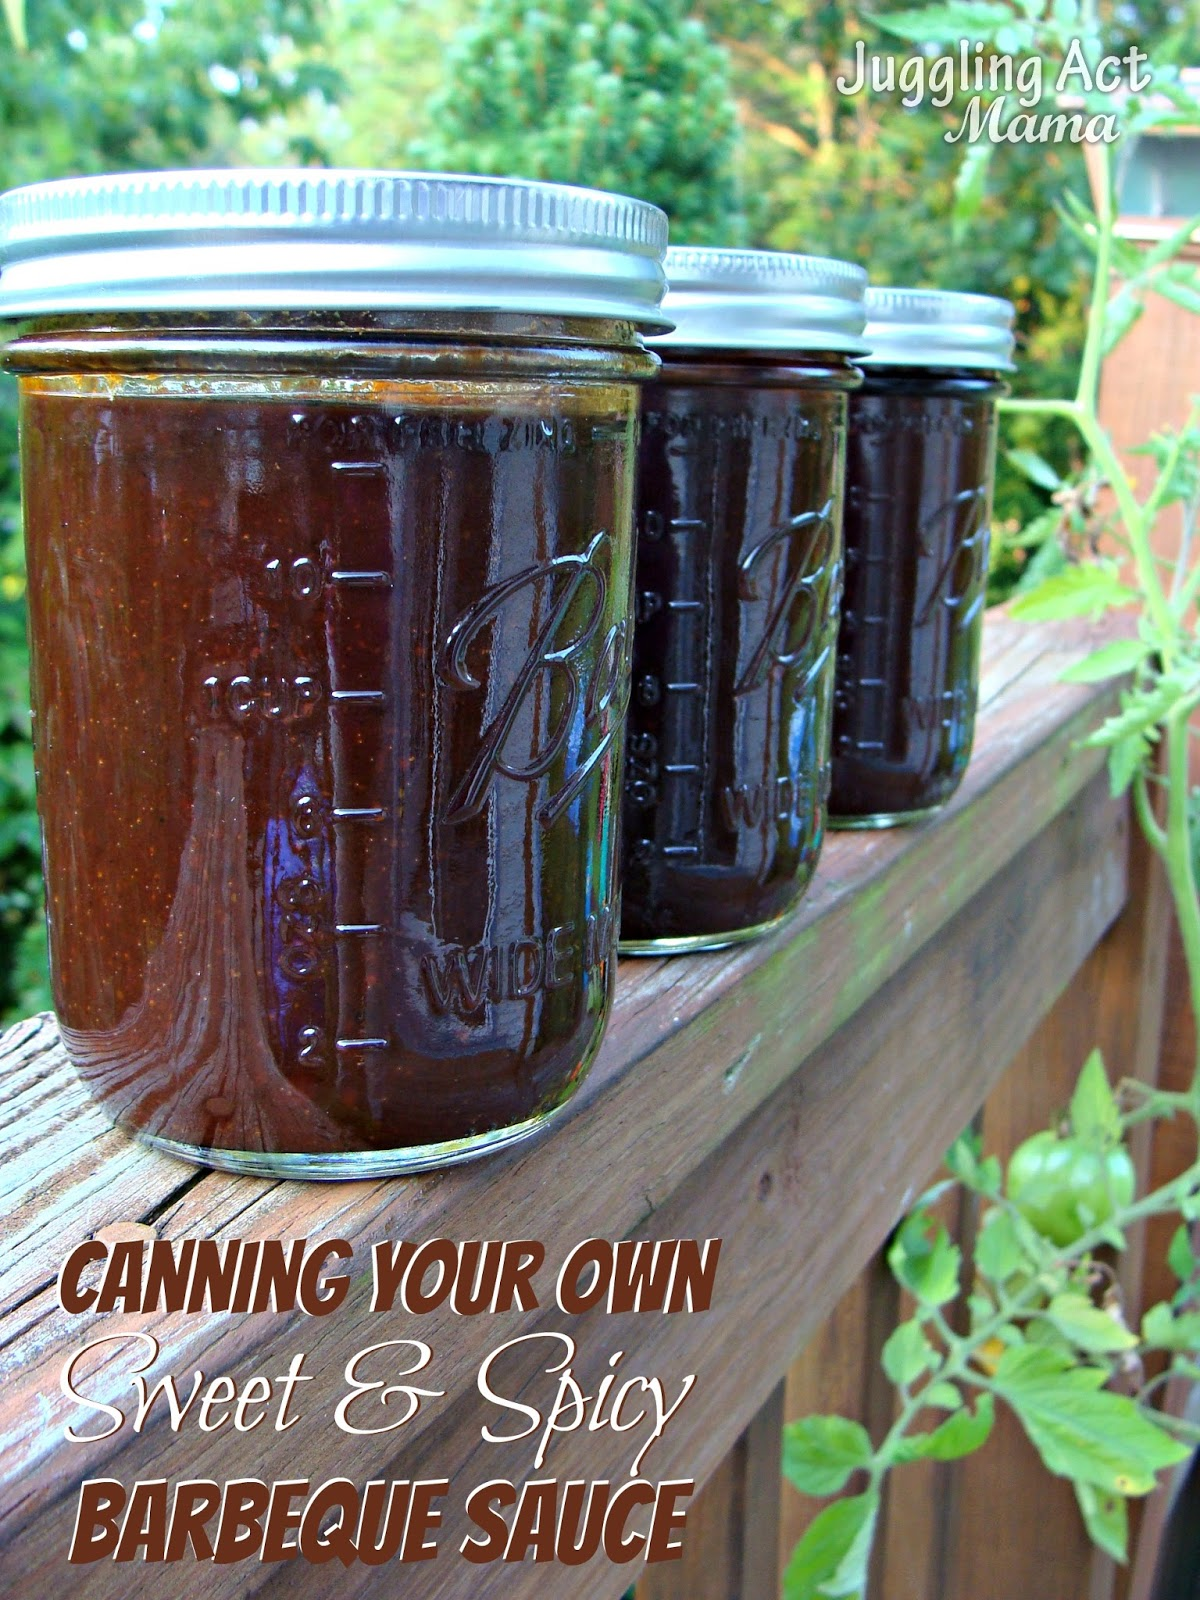 http://4.bp.blogspot.com/-jsrIFsNbkwY/UhOV2MtOzBI/AAAAAAAAIHc/S_3fP1nP5fM/s1600/Canning+Your+Own+Sweet+and+Spicy+Barbeque+Sauce.jpg